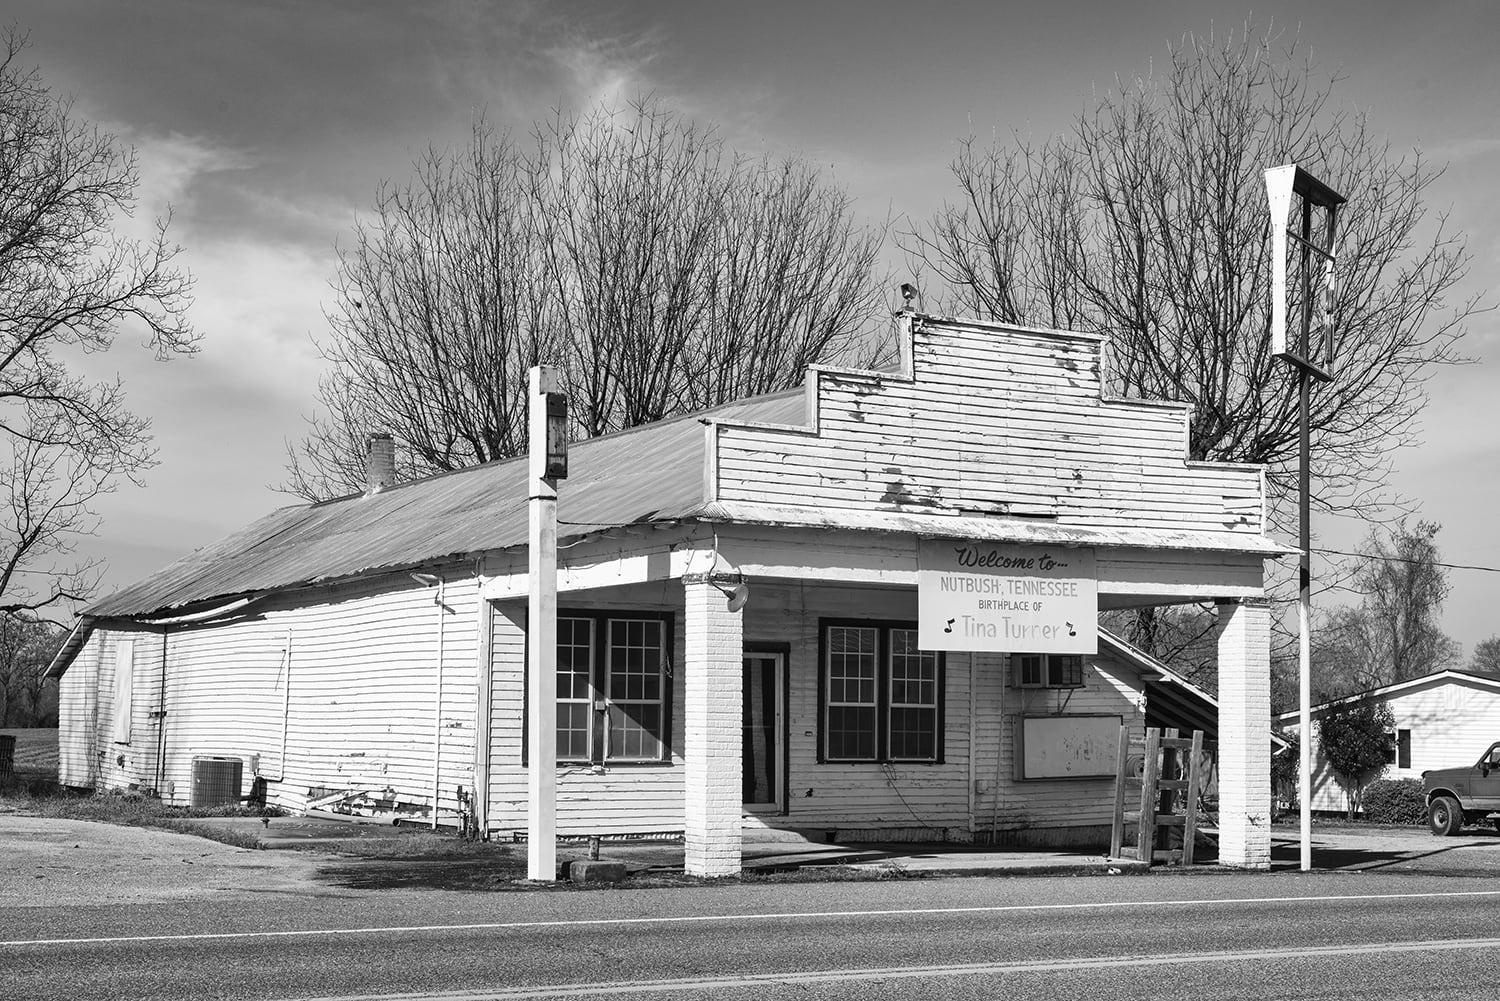 Black and white photograph of an old clapboard store building located on Highway 19 in Nutbush, Tennessee. Click to by a fine black and white print.